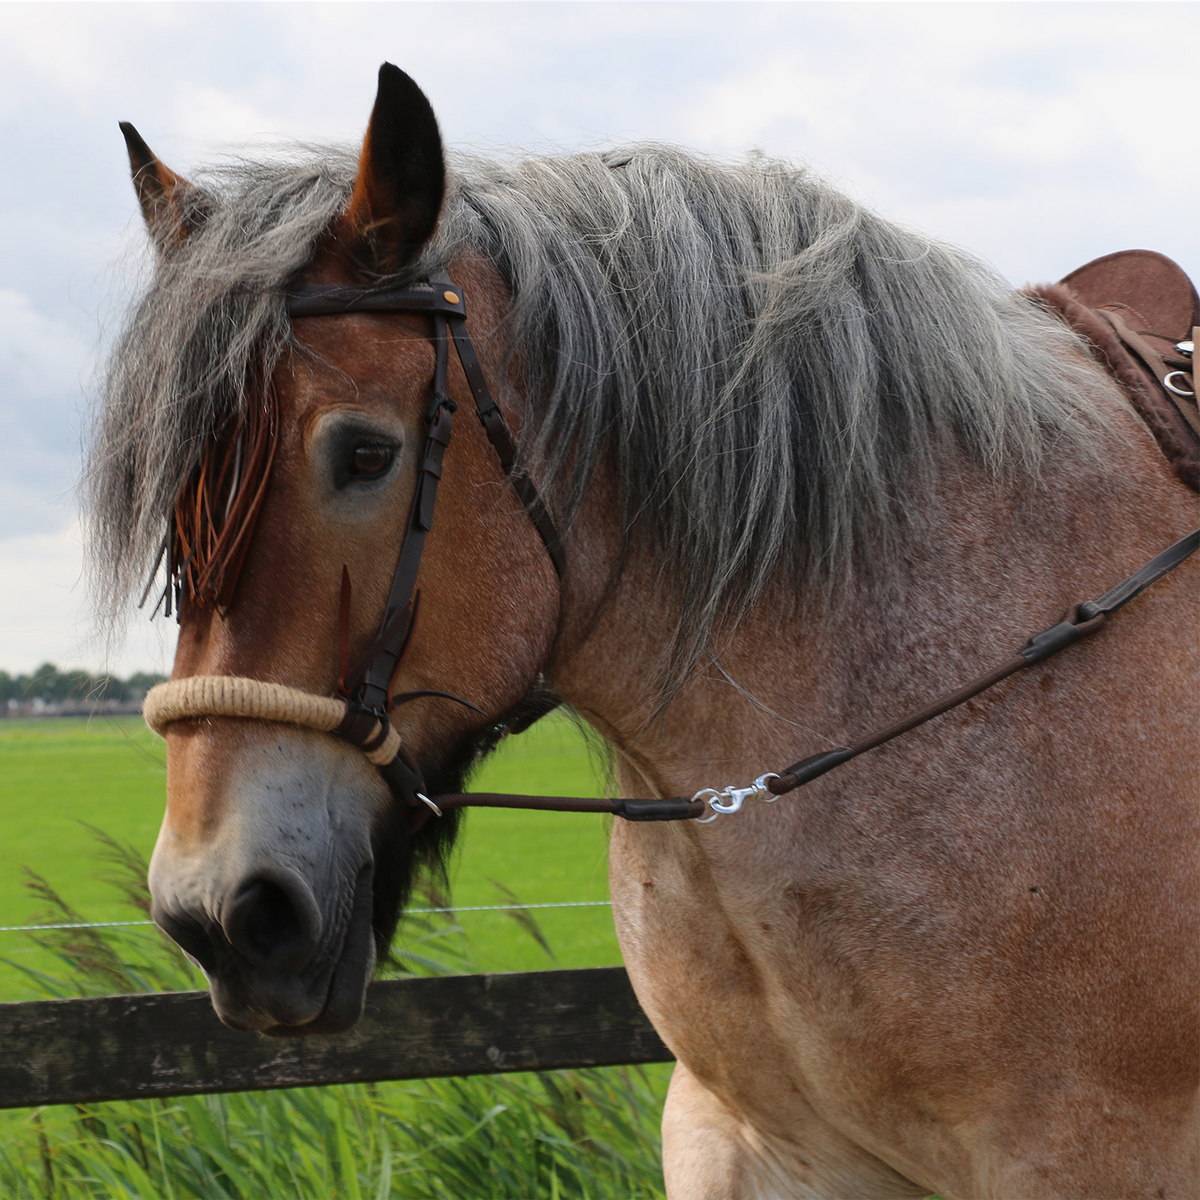 F R A  Tinver Bitless Bridle (System 4) Soft Leather Reins Incl